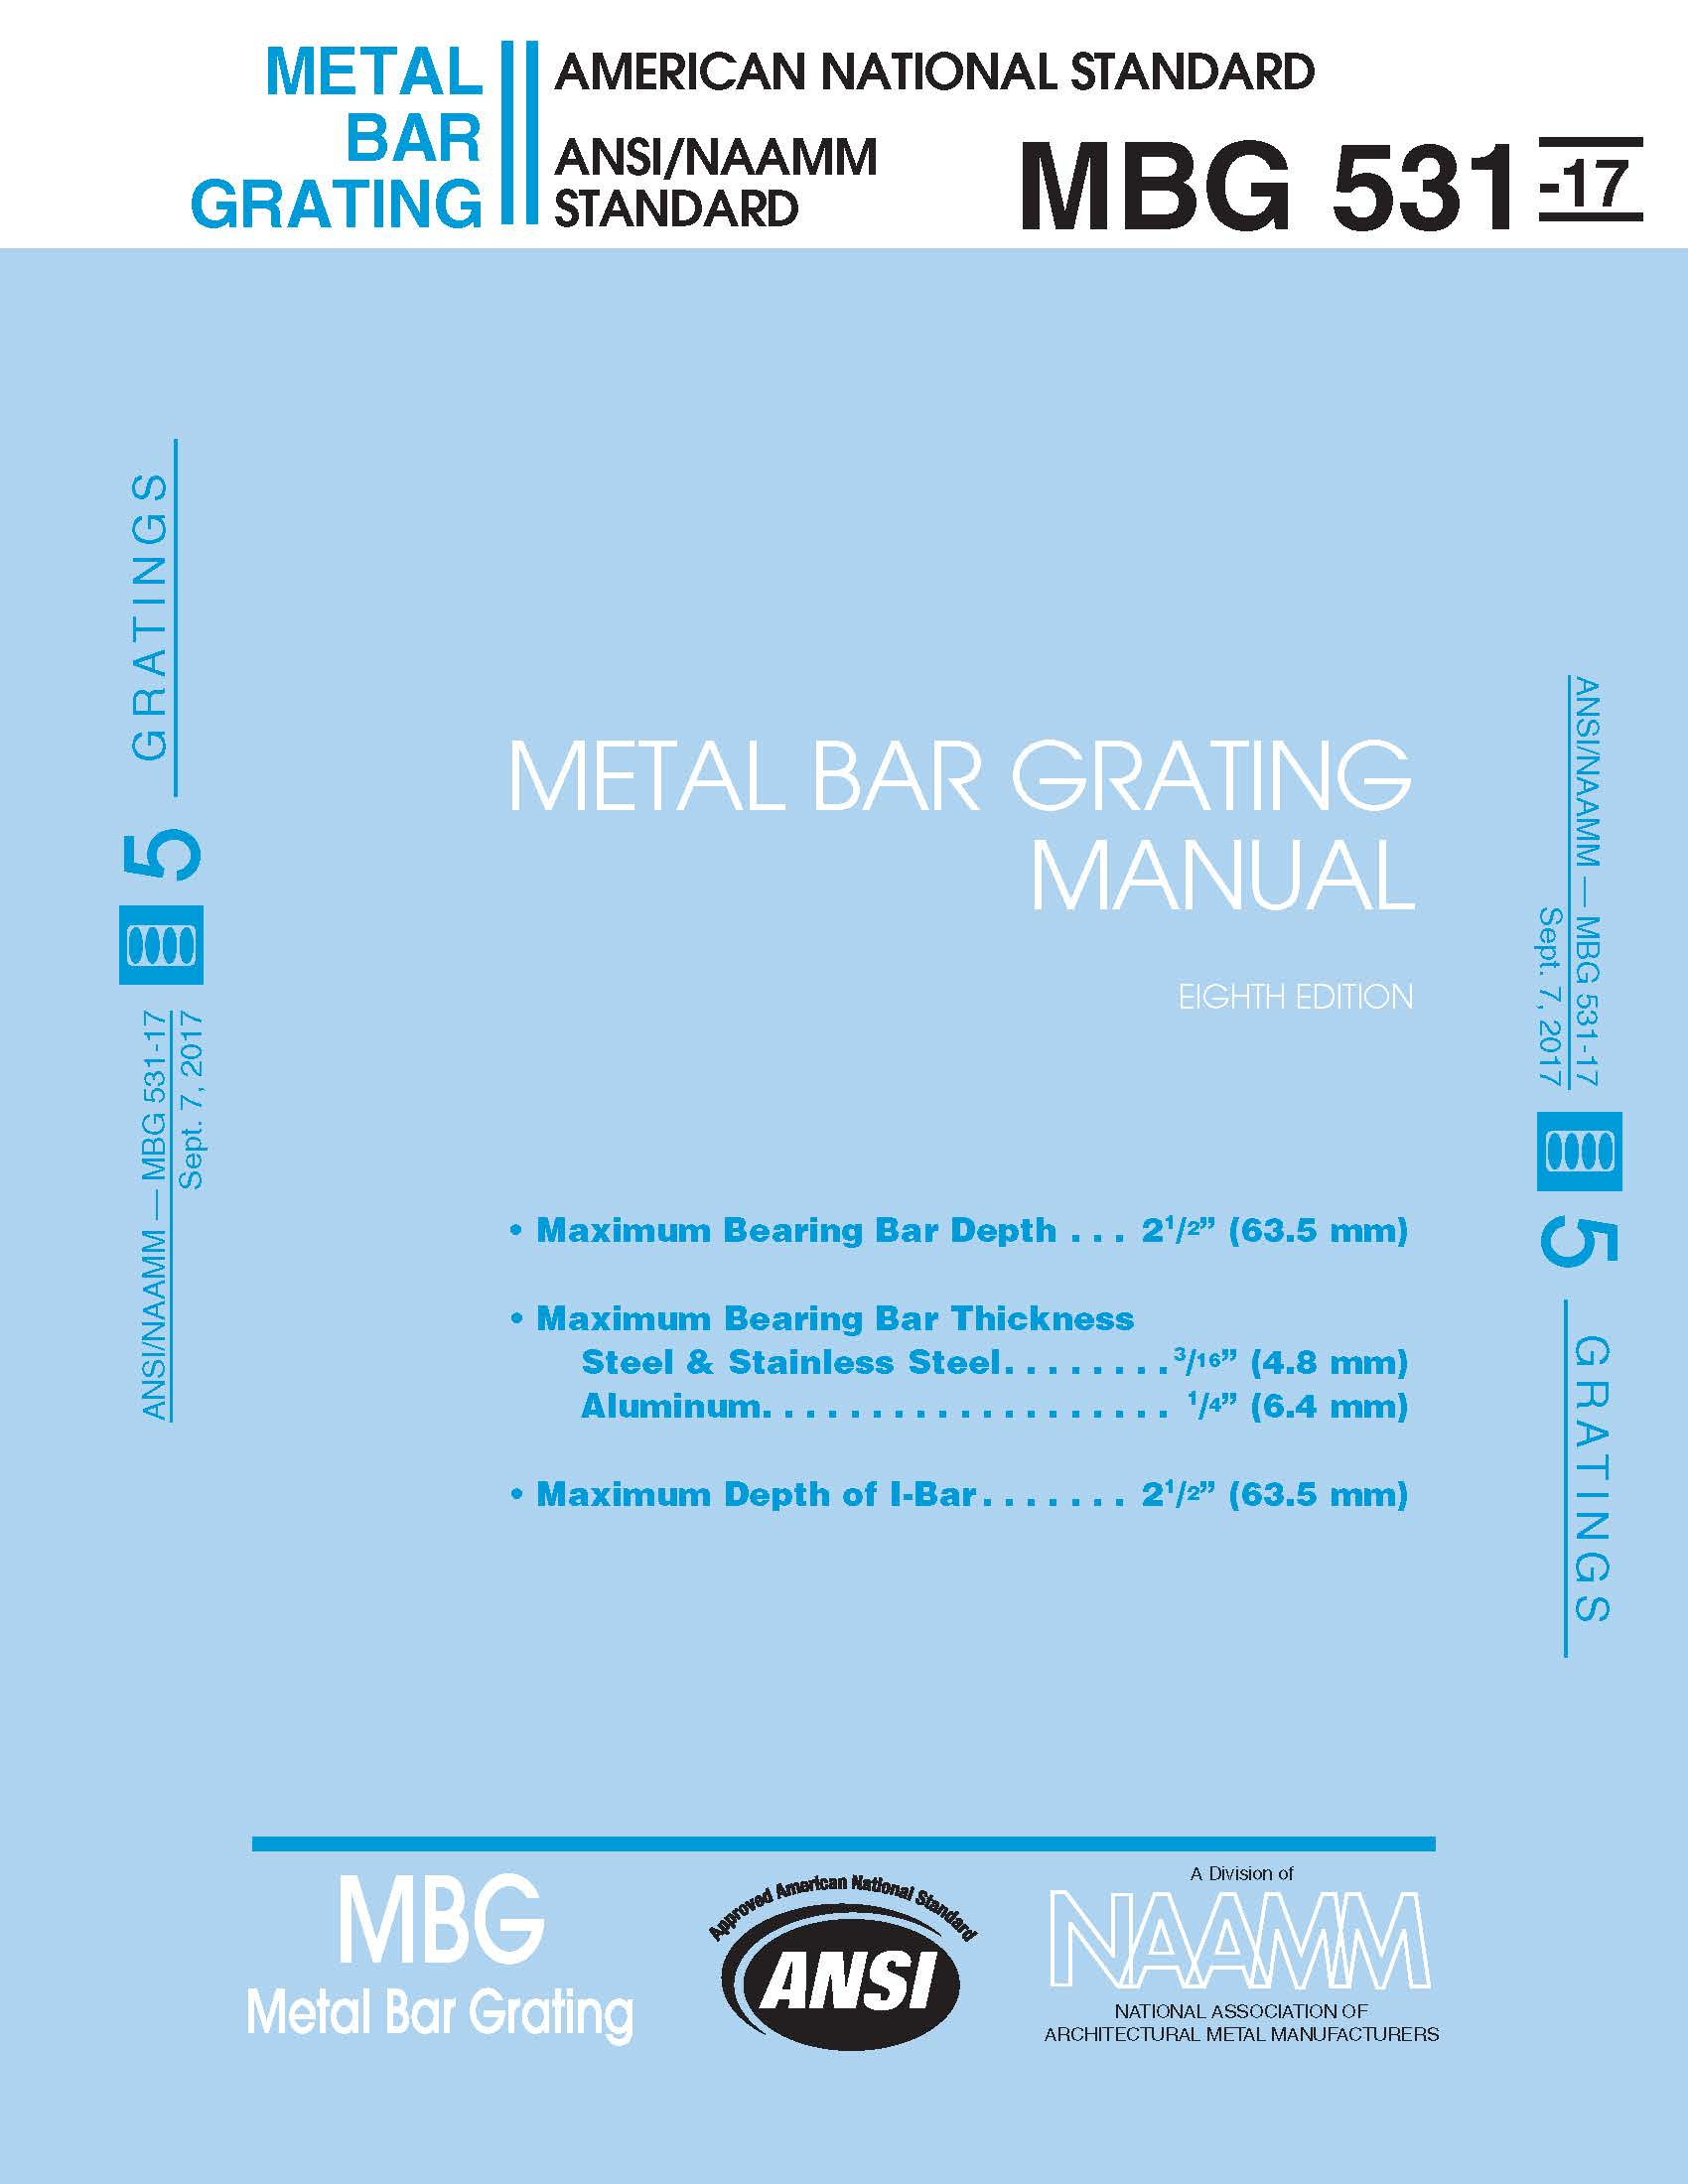 National Association of Architectural Metal Manufacturers